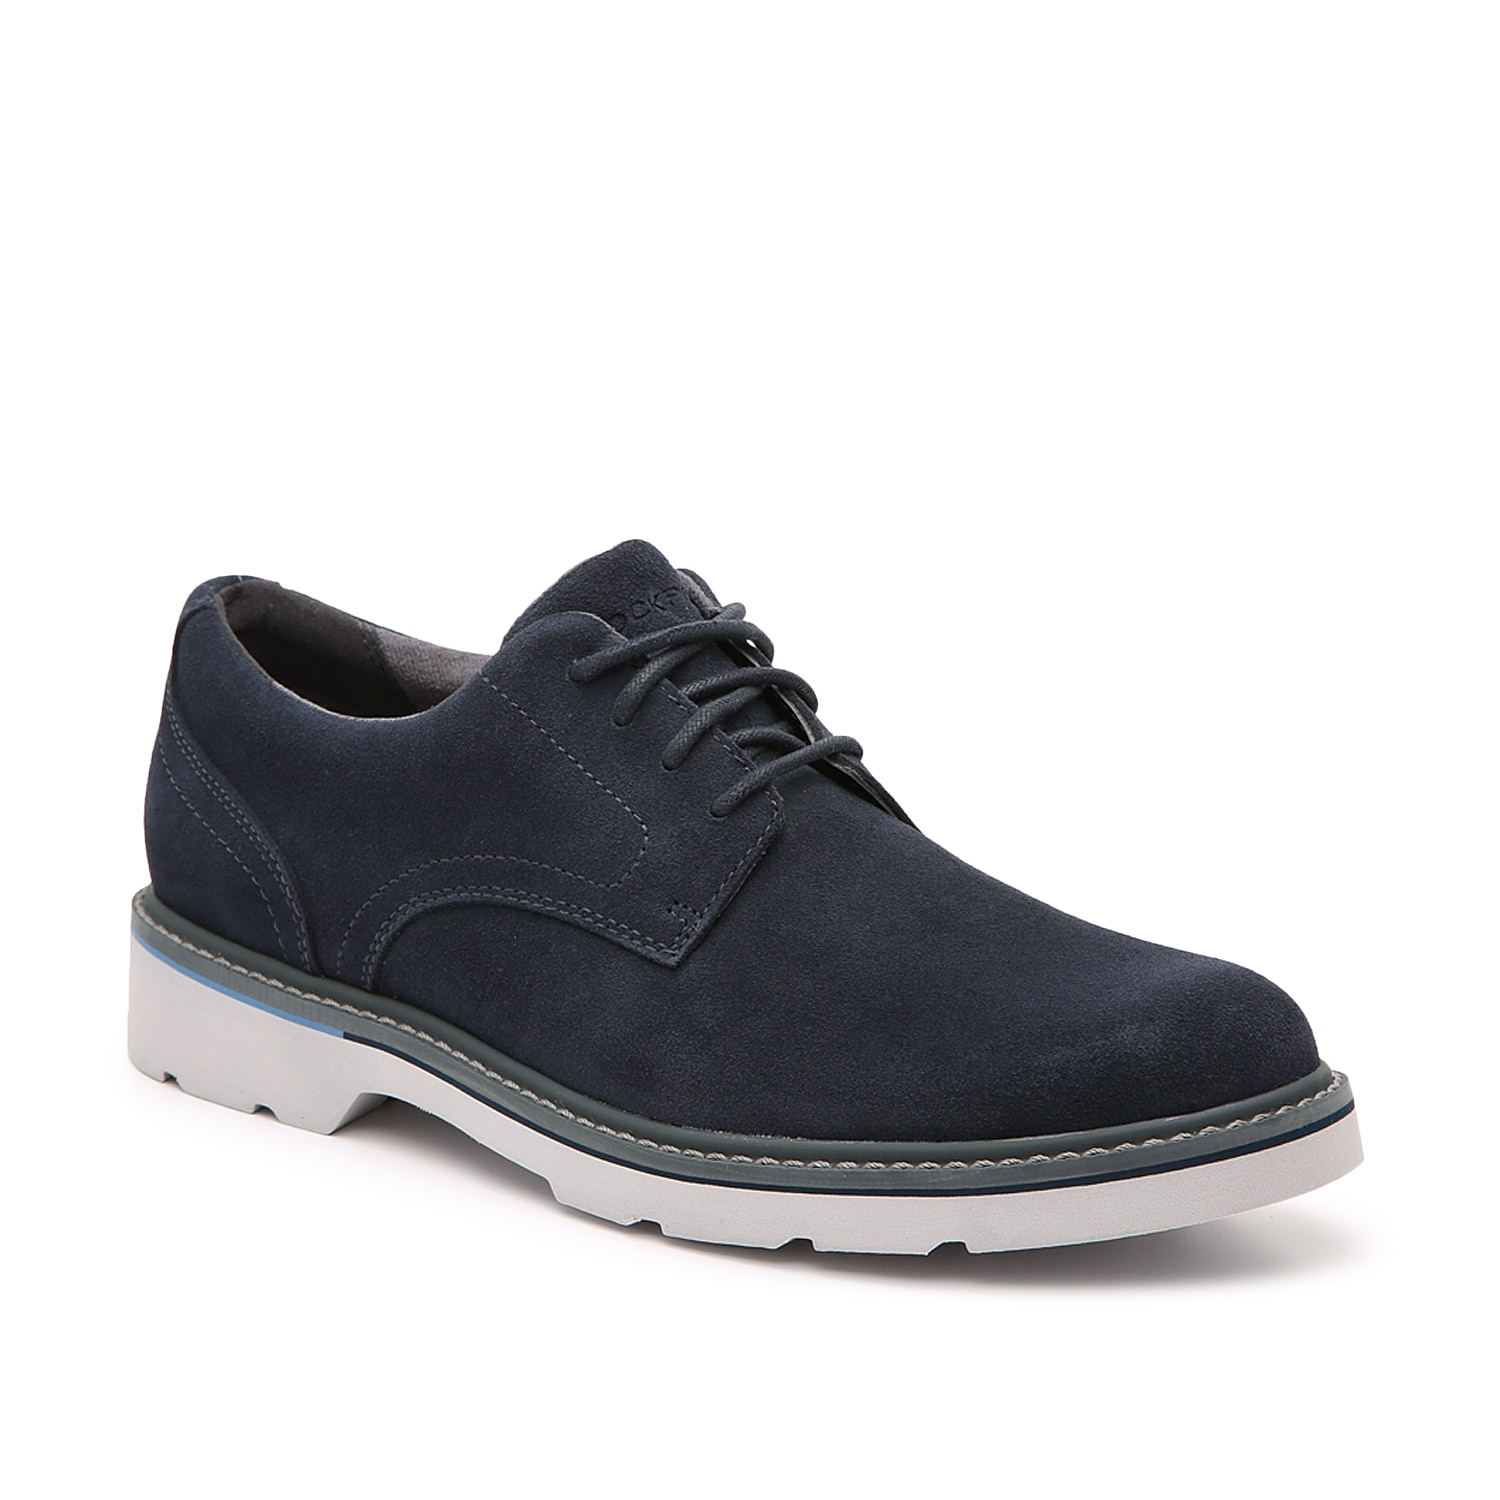 Mixing handsome looks with practical fashion,the Charlee oxford from Rockport keeps cushioning, shock-absorbing tech, and lightweight materials at the forefront of design. A Hydro-Shield waterproof treatment protects the leather upper for lasting wearability.